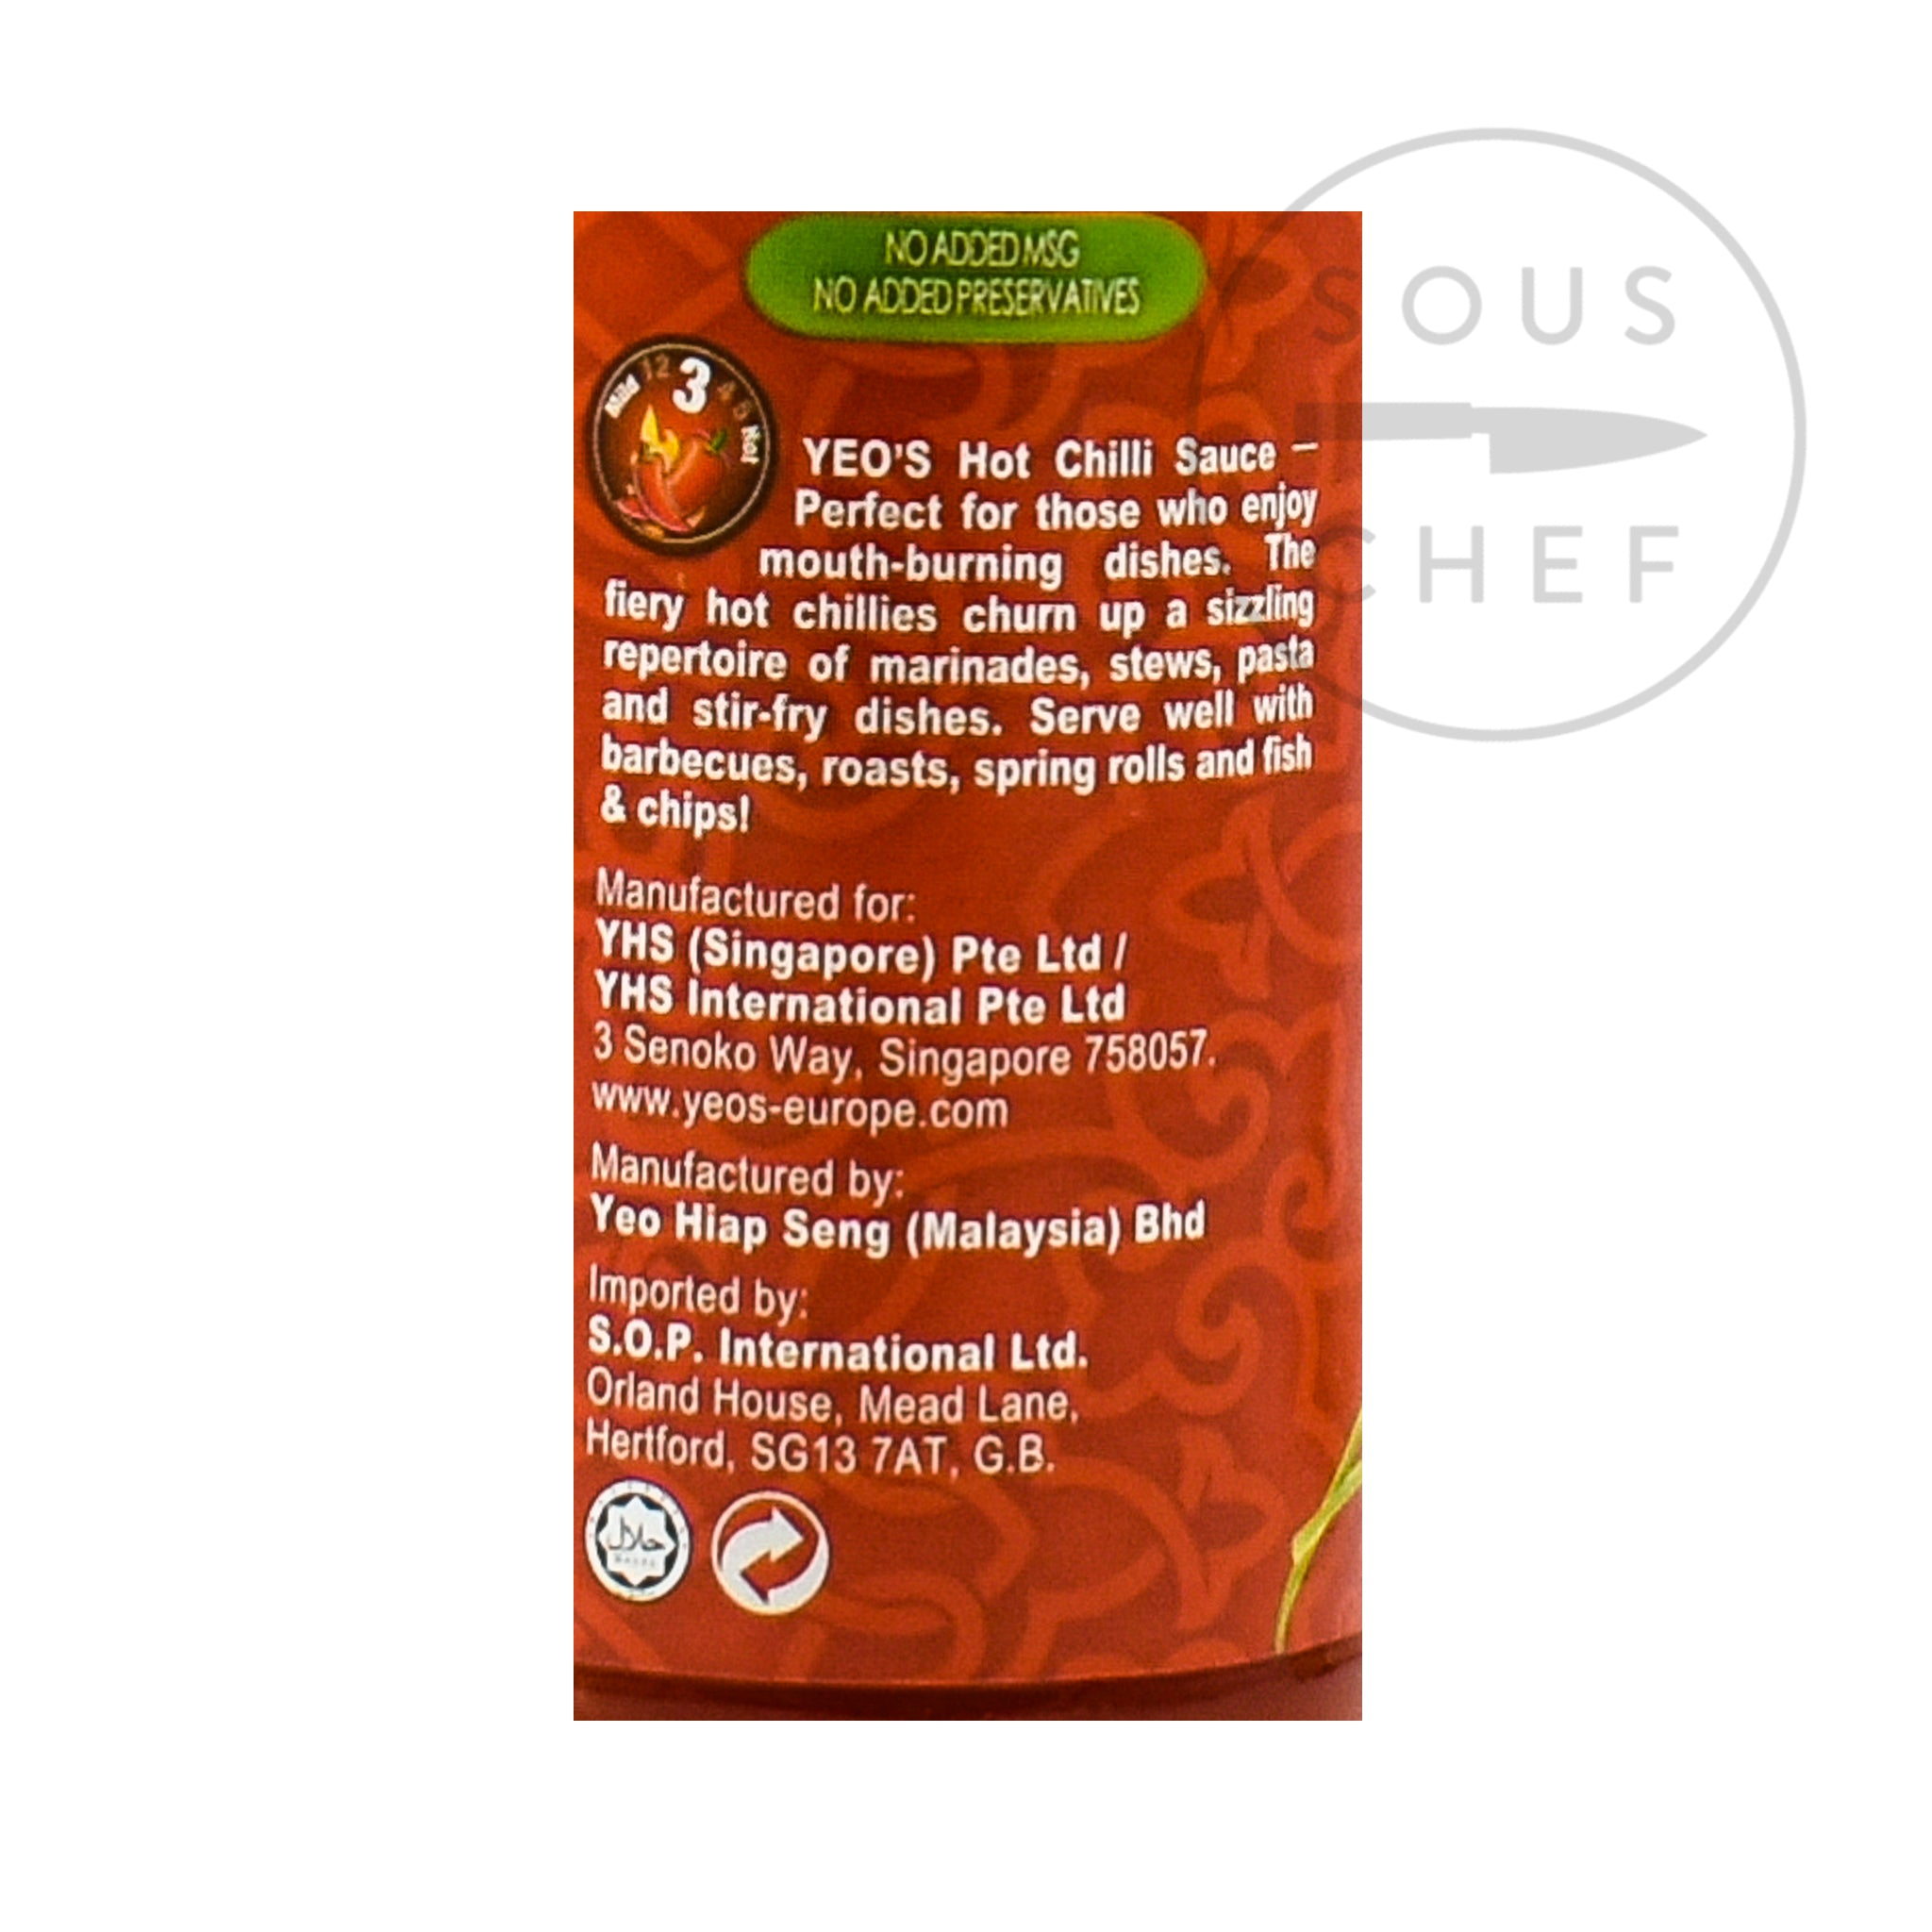 Yeo's Hot Chilli Sauce 300ml Ingredients Sauces & Condiments Asian Sauces & Condiments Southeast Asian Food